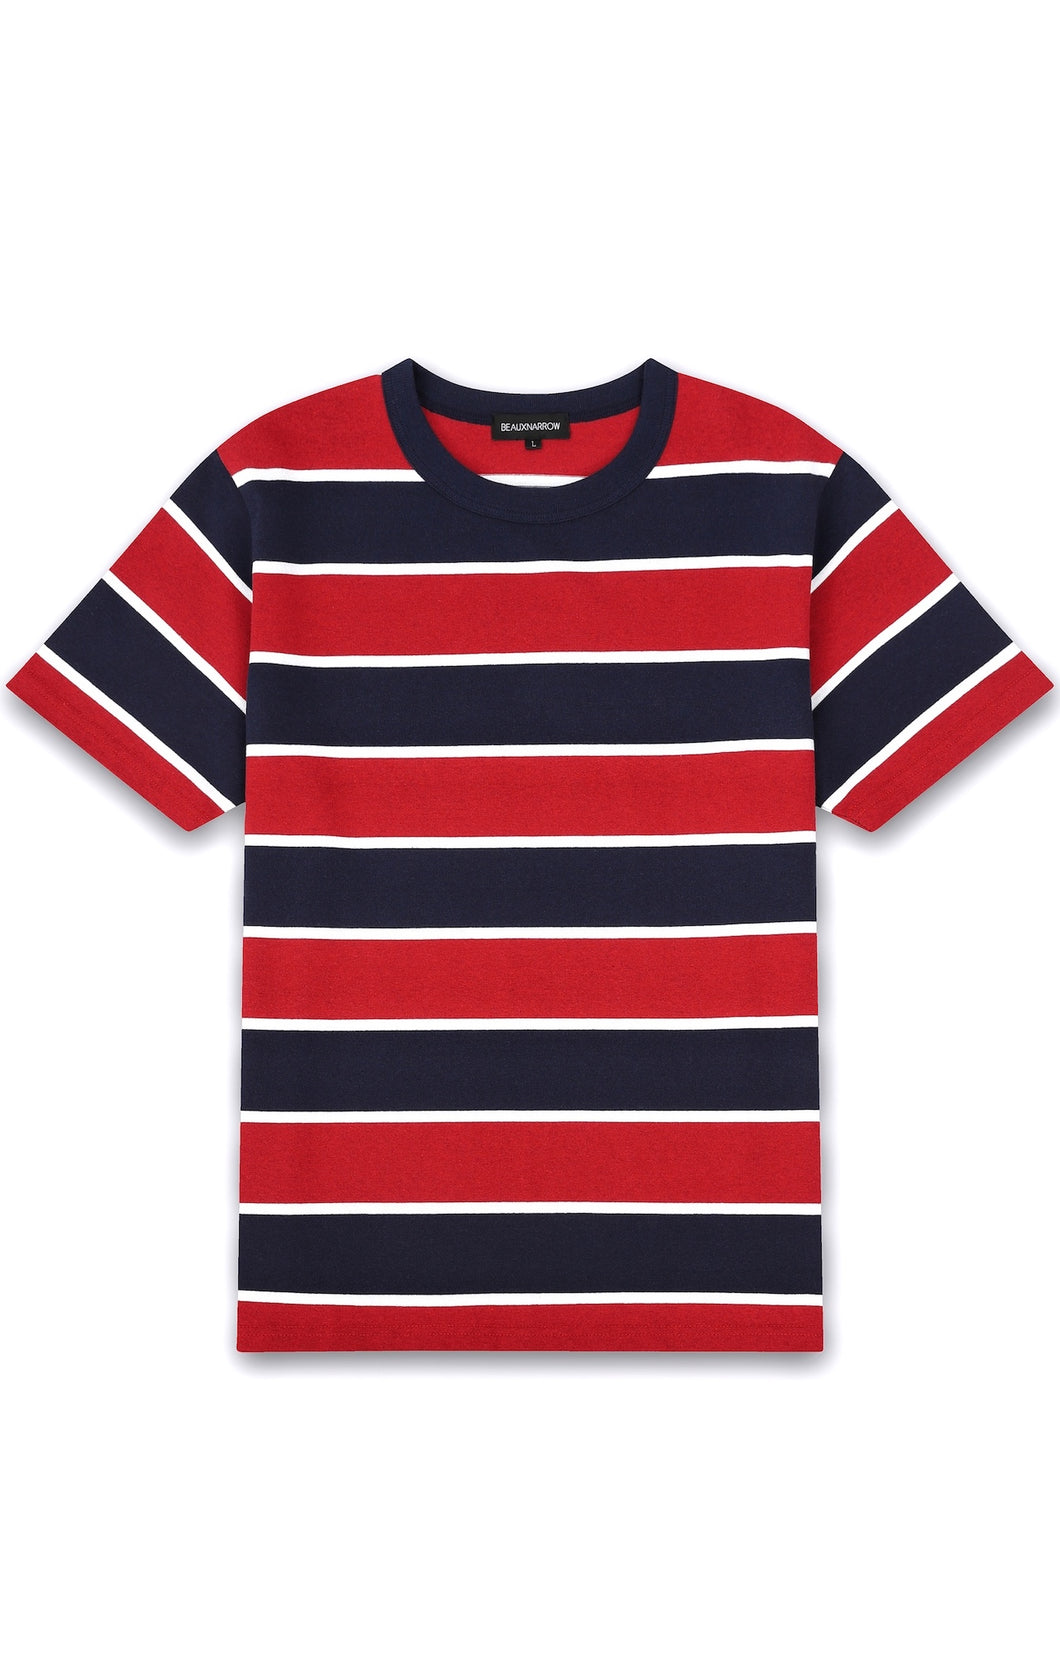 STRIPE SHORT-SLEEVE T-SHIRT - RED/NAVY